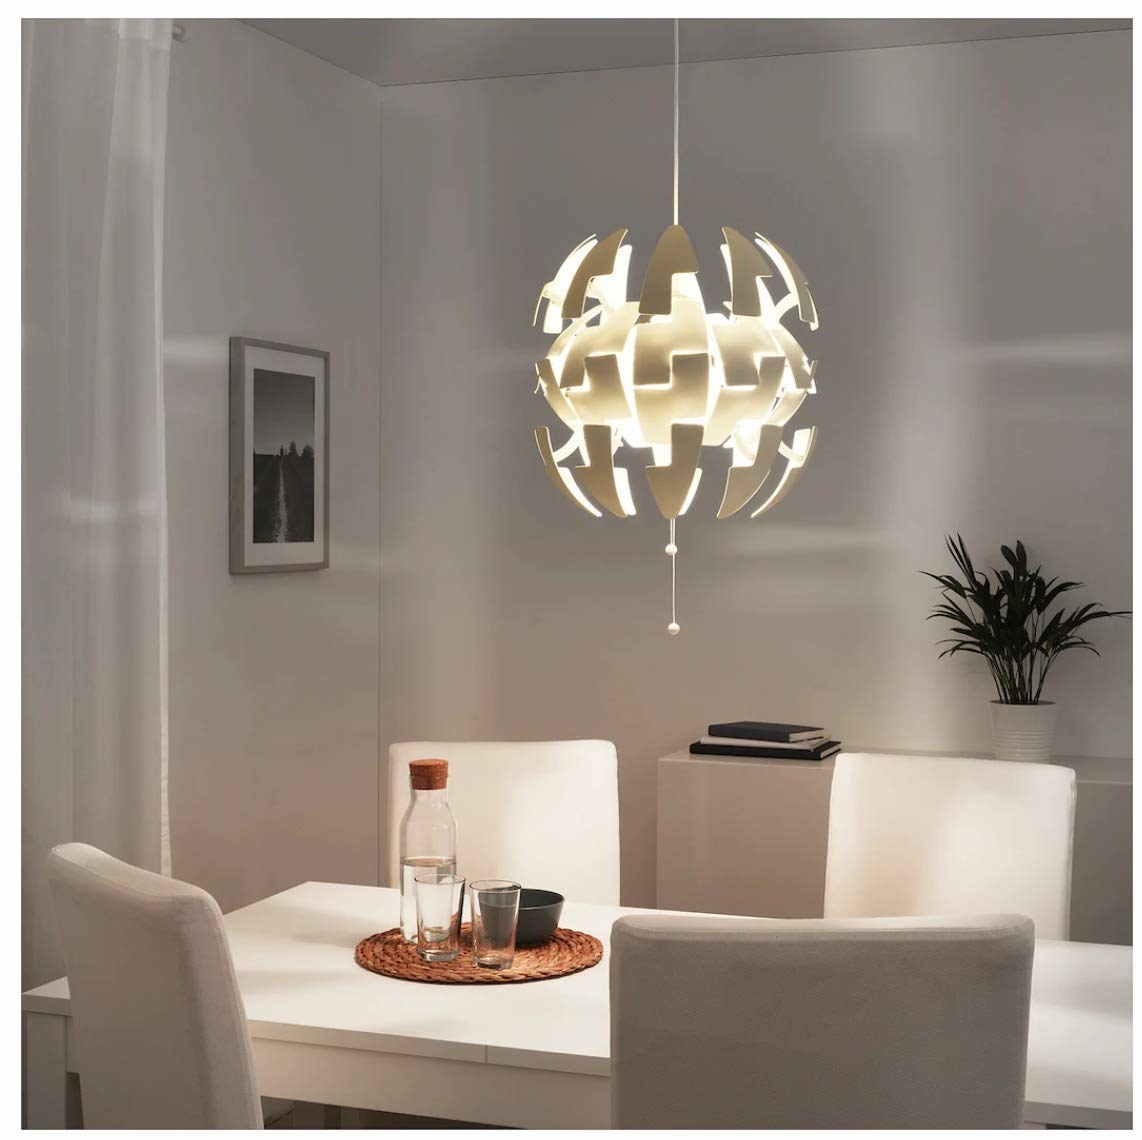 A white pendant lamp over a table